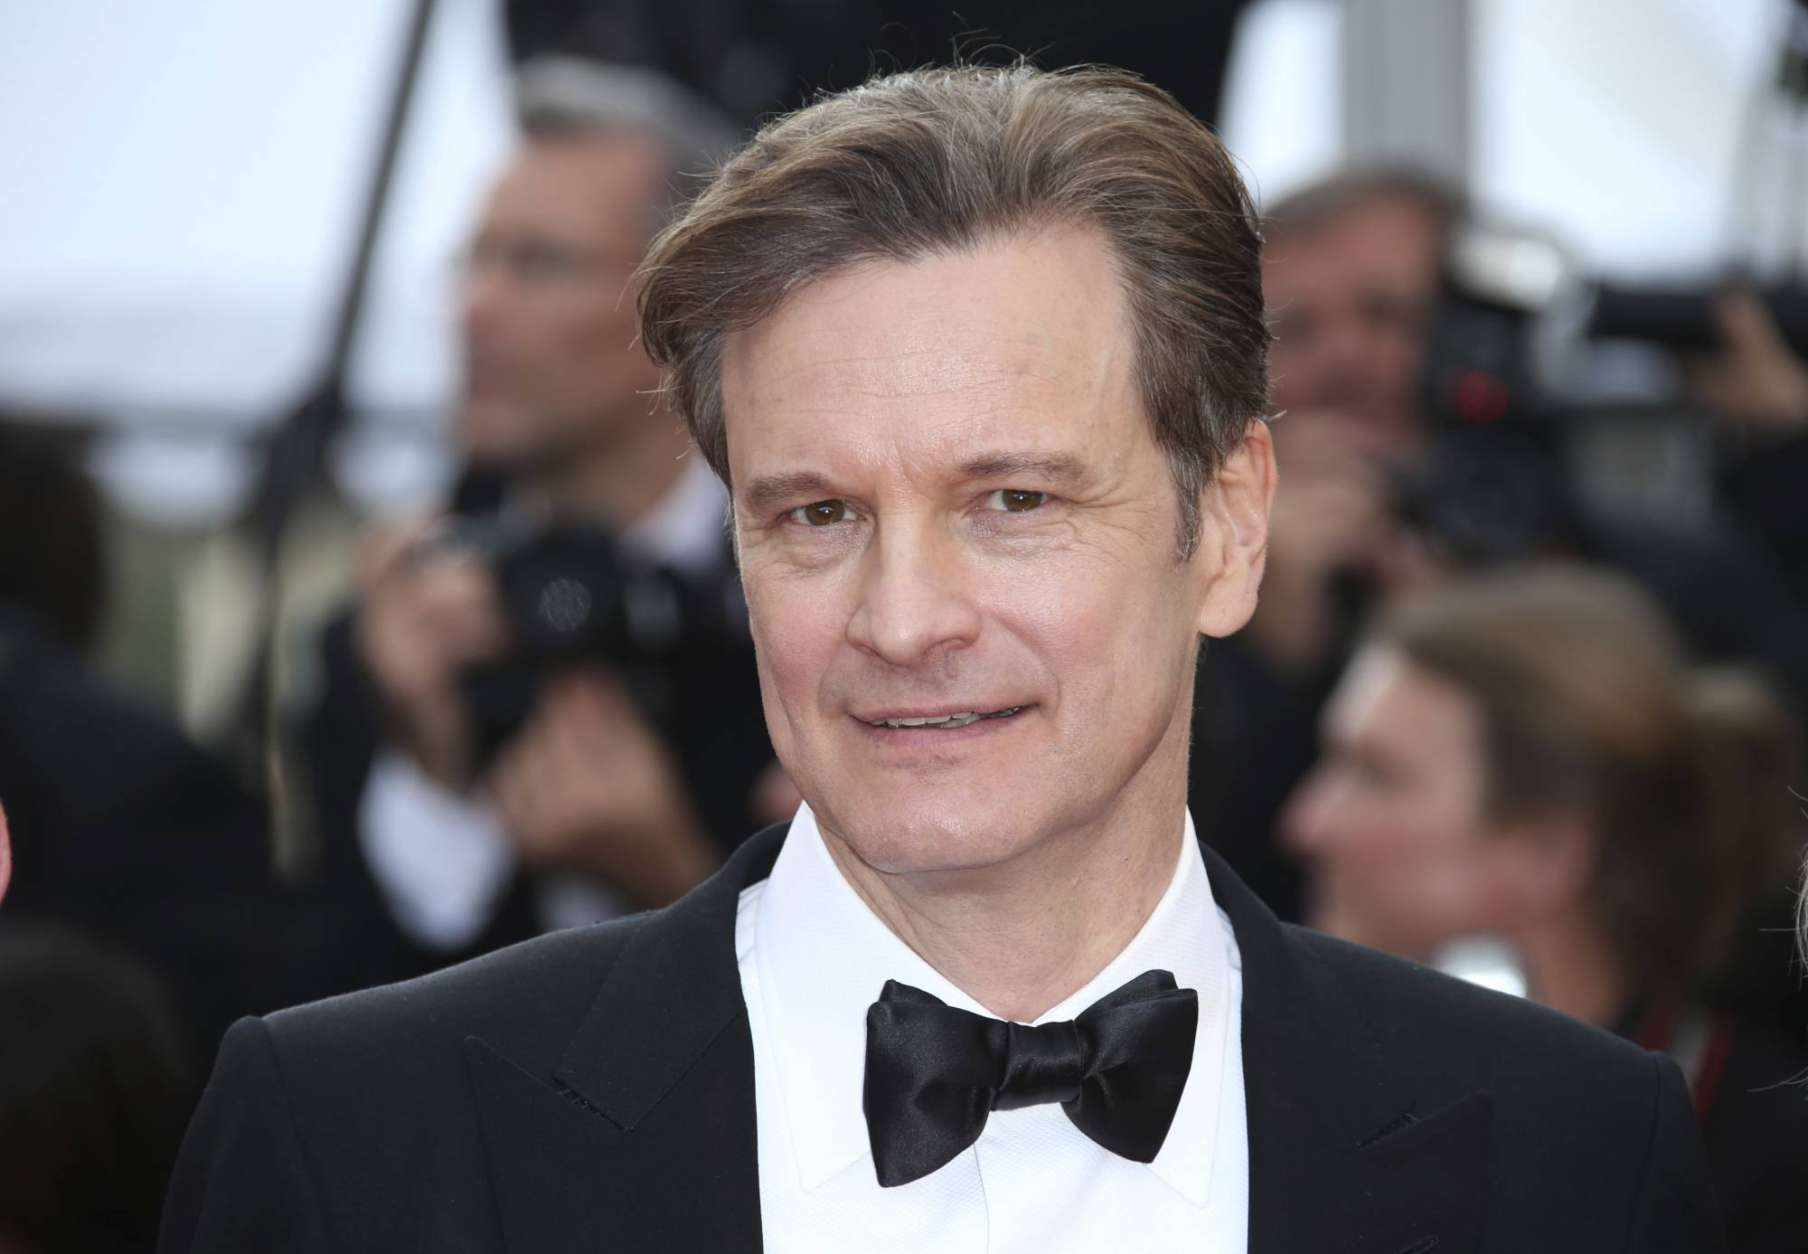 "FILE -  In this Monday, May 16, 2016 file photo, actor Colin Firth poses for photographers upon arrival at the screening of the film Loving at the 69th international film festival, Cannes, southern France. British actor Colin Firth says he has taken Italian citizenship as a ""sensible"" move amid global political uncertainty. Firth, who is married to environmentalist Livia Giuggioli, says he has become a dual U.K.-Italian citizen, and his wife is applying for British nationality. Their two sons already have dual citizenship.  (AP Photo/Joel Ryan, File)"